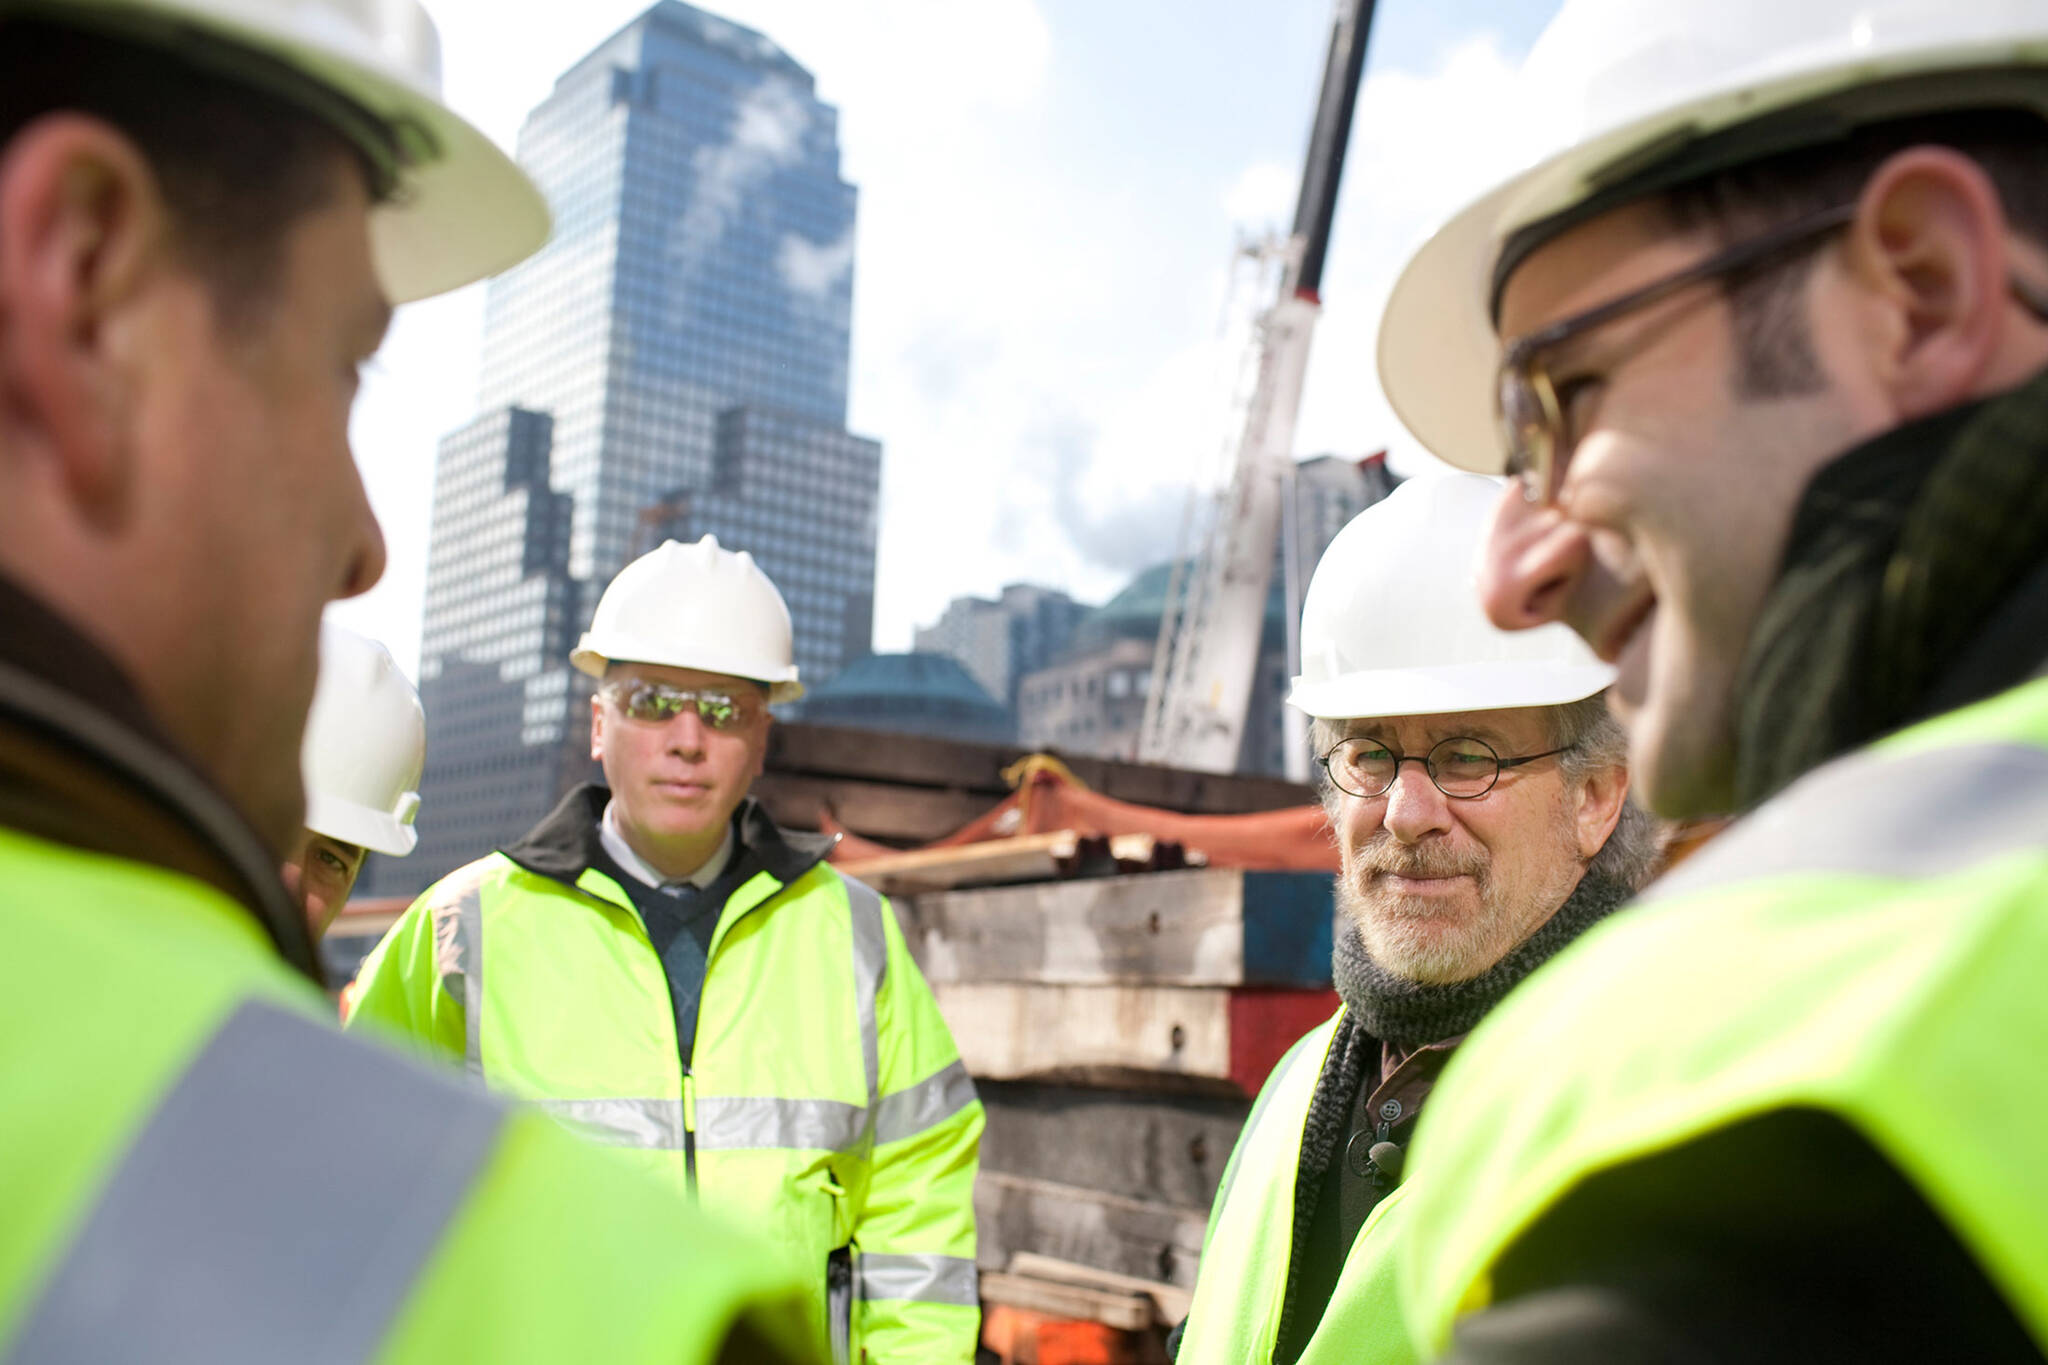 Danny Forster and Steven Spielberg on Ground Zero for the Rising: Rebuilding Ground Zero documentary Co-produced by Danny Forster and Steven Spielberg about the rebuilding of the World Trade Center site in the wake of 9/11.